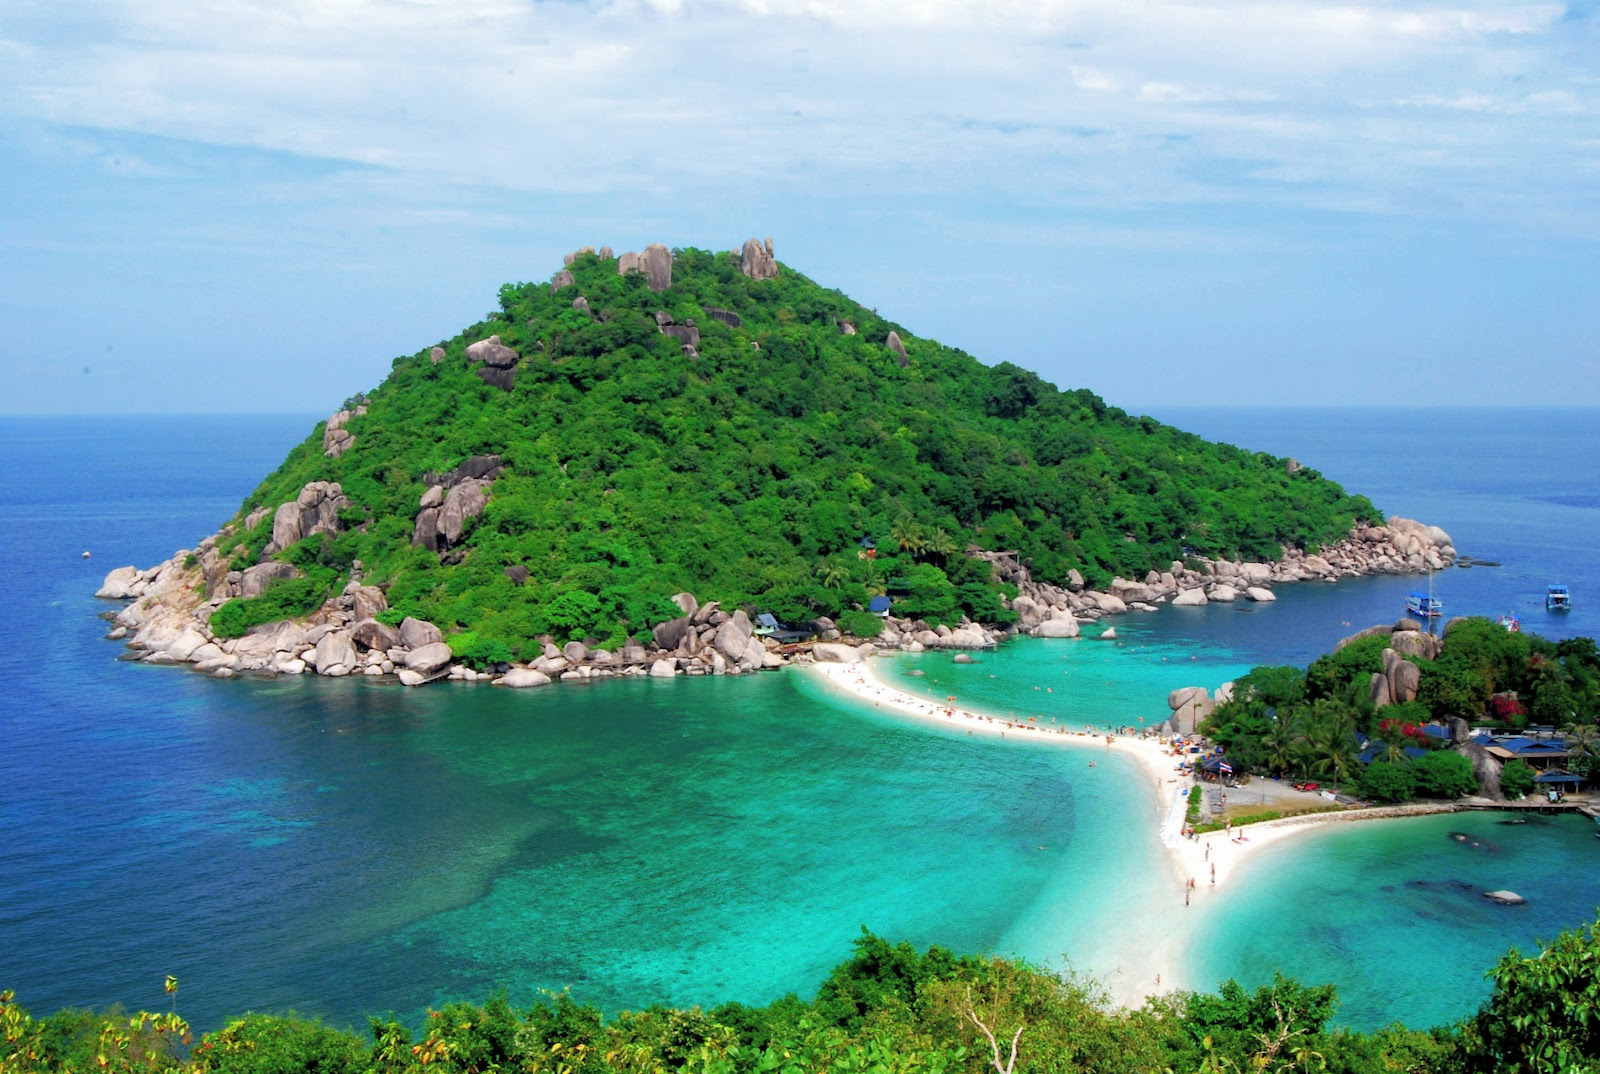 Snorkel Tour to Koh Nangyuan & Koh Tao by Speed Boat from Koh Samui